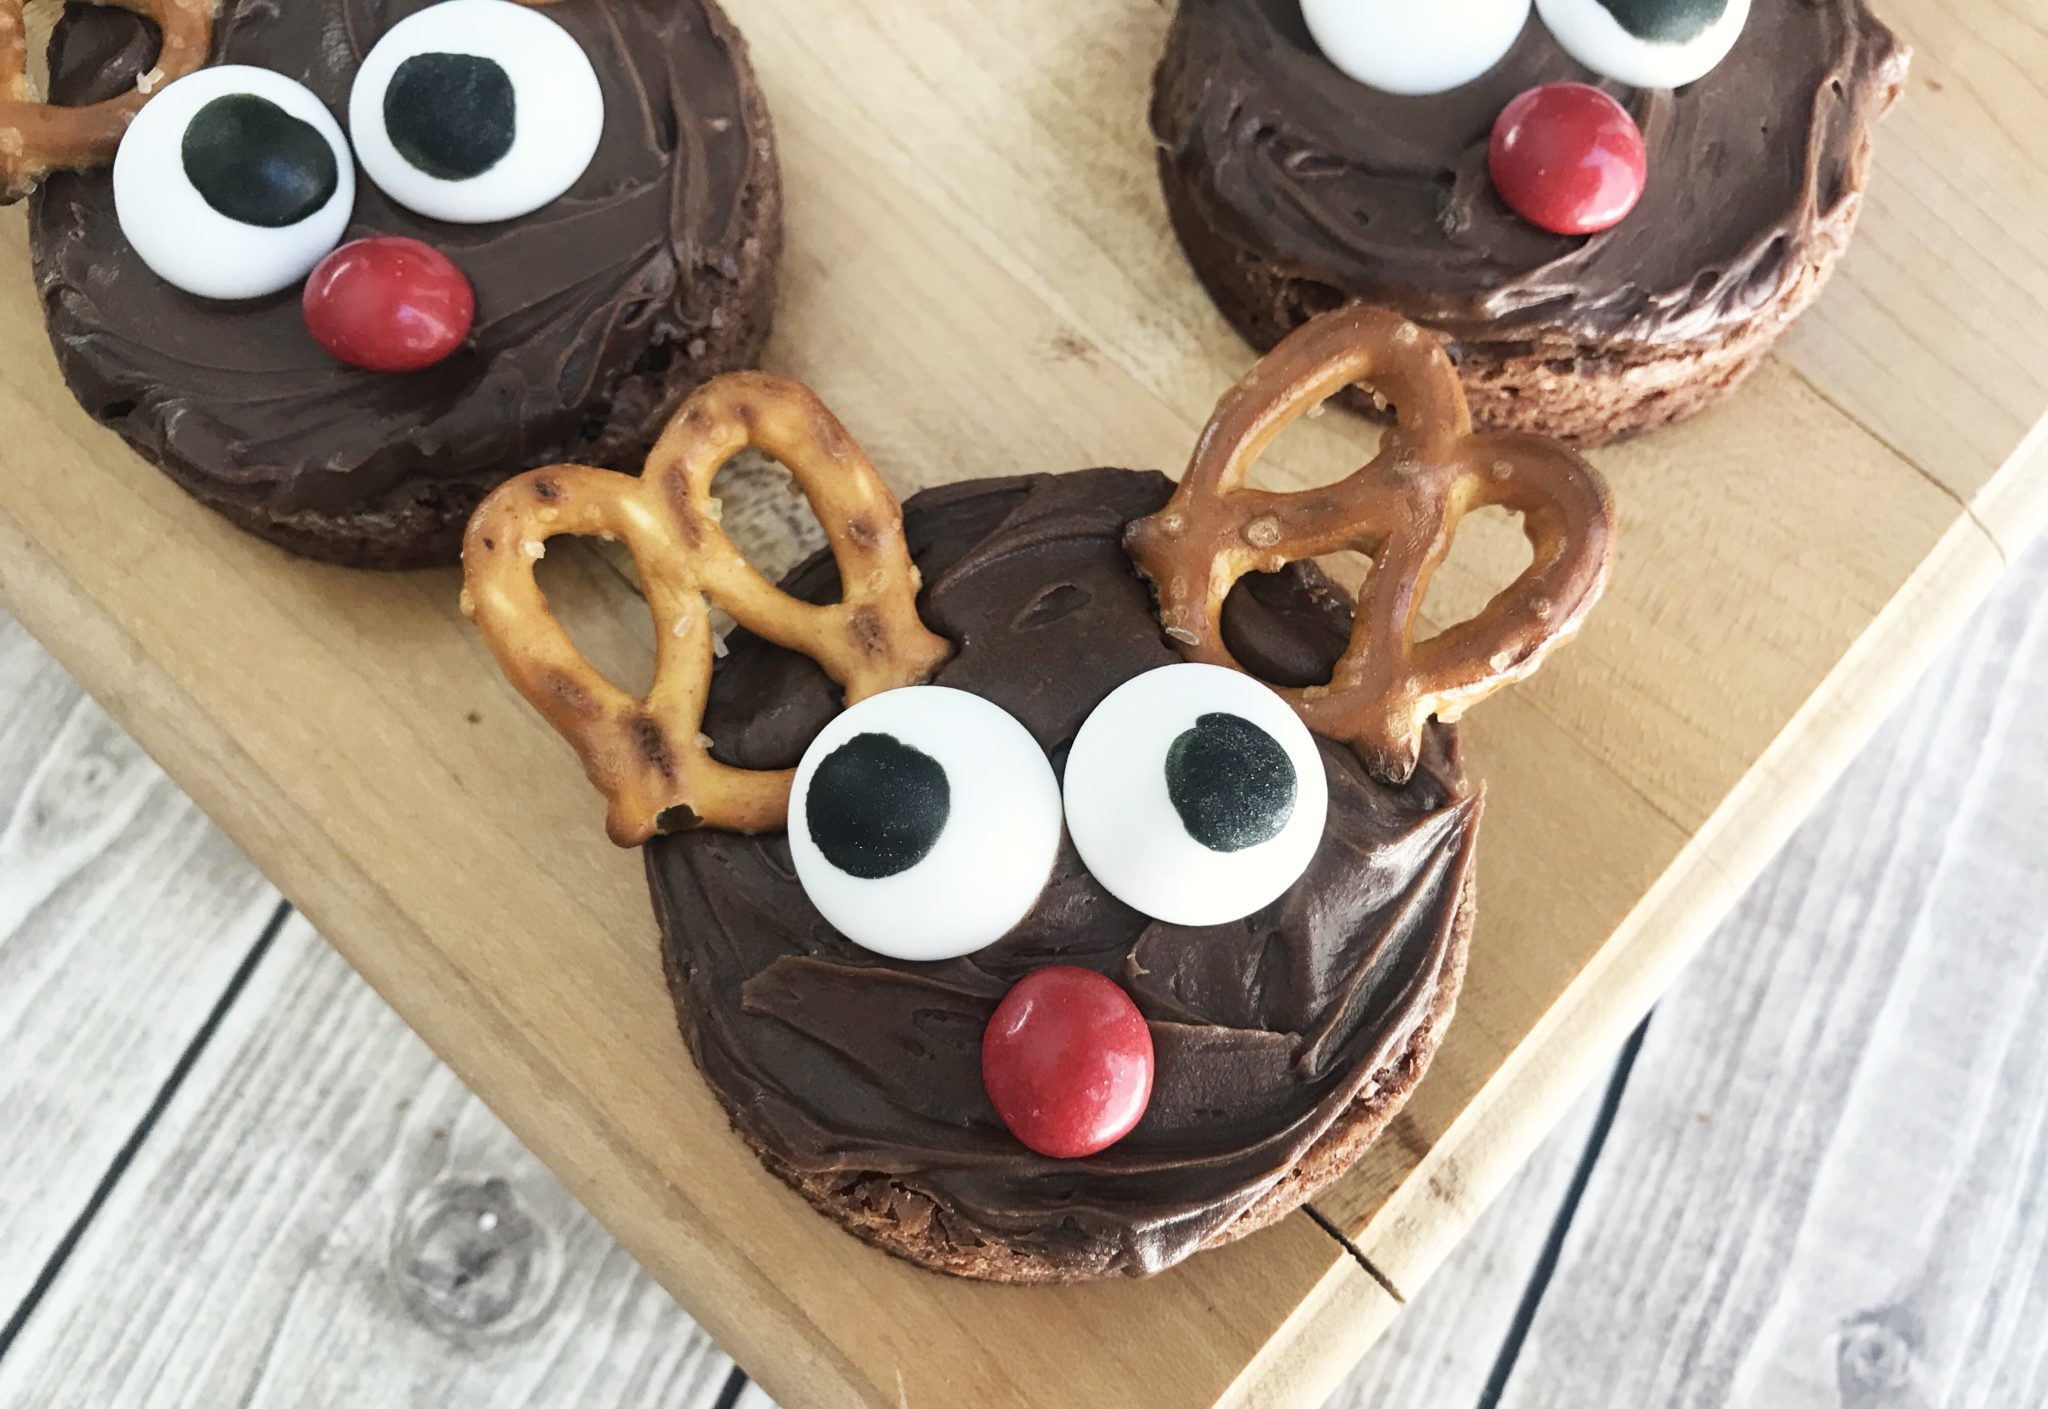 If you need a sweet treat for all your Christmas festivities this year, try these Reindeer Brownies. They're easy to make and they'll be a huge hit!